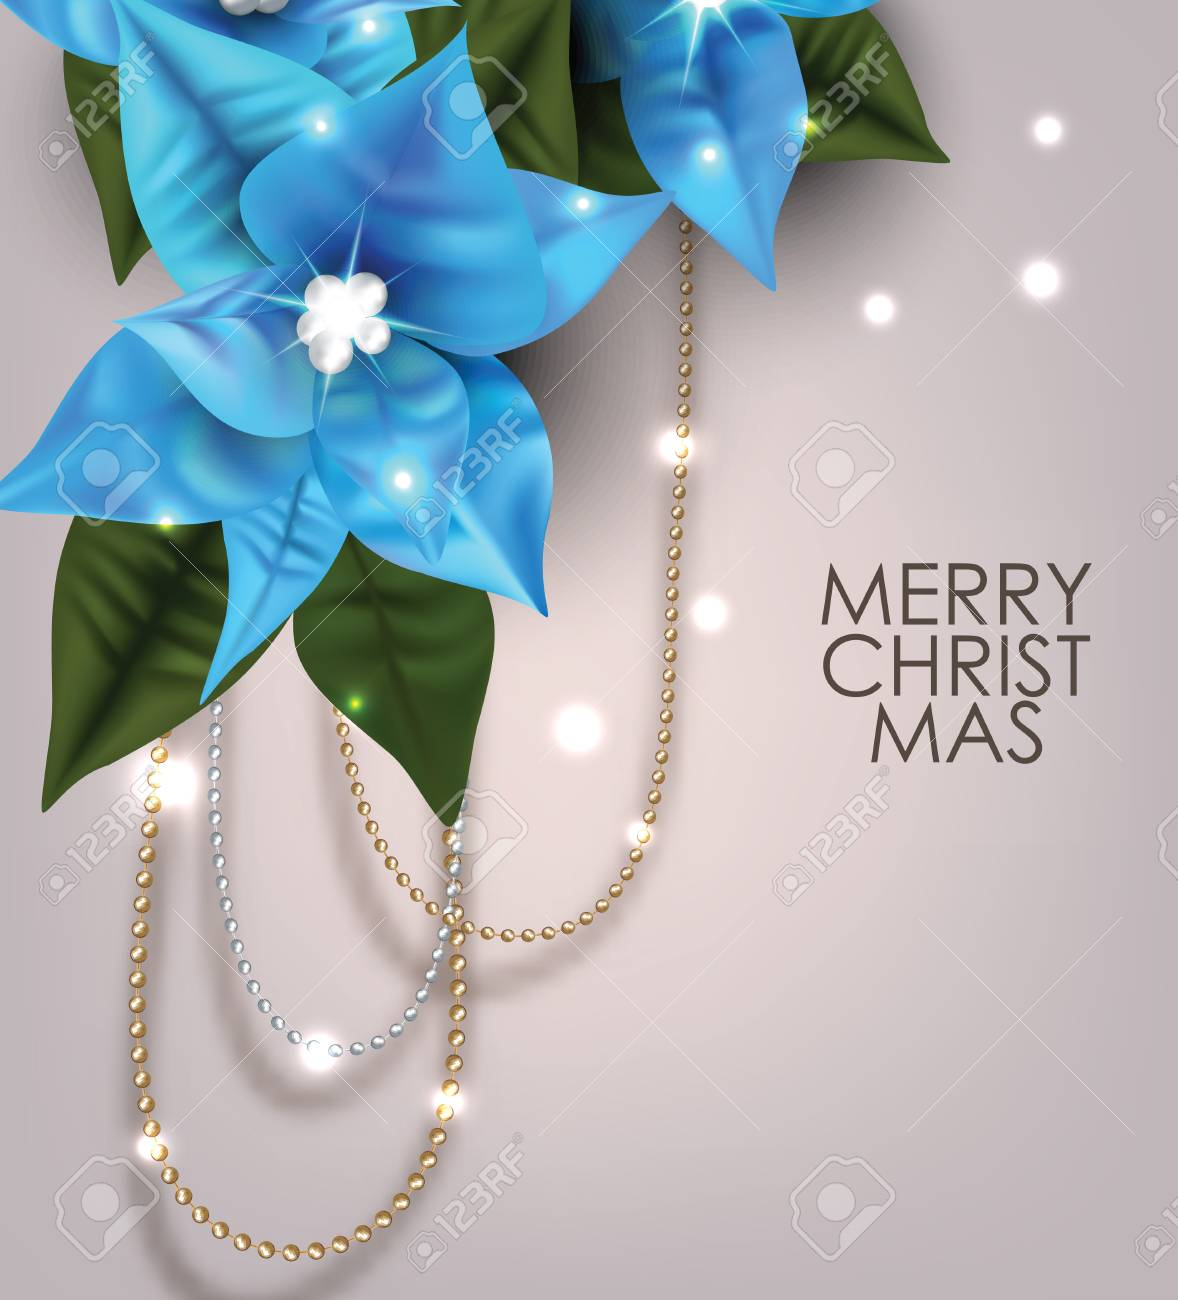 Christmas Greeting Card With Garlands And Blue Poinsettia Flowers